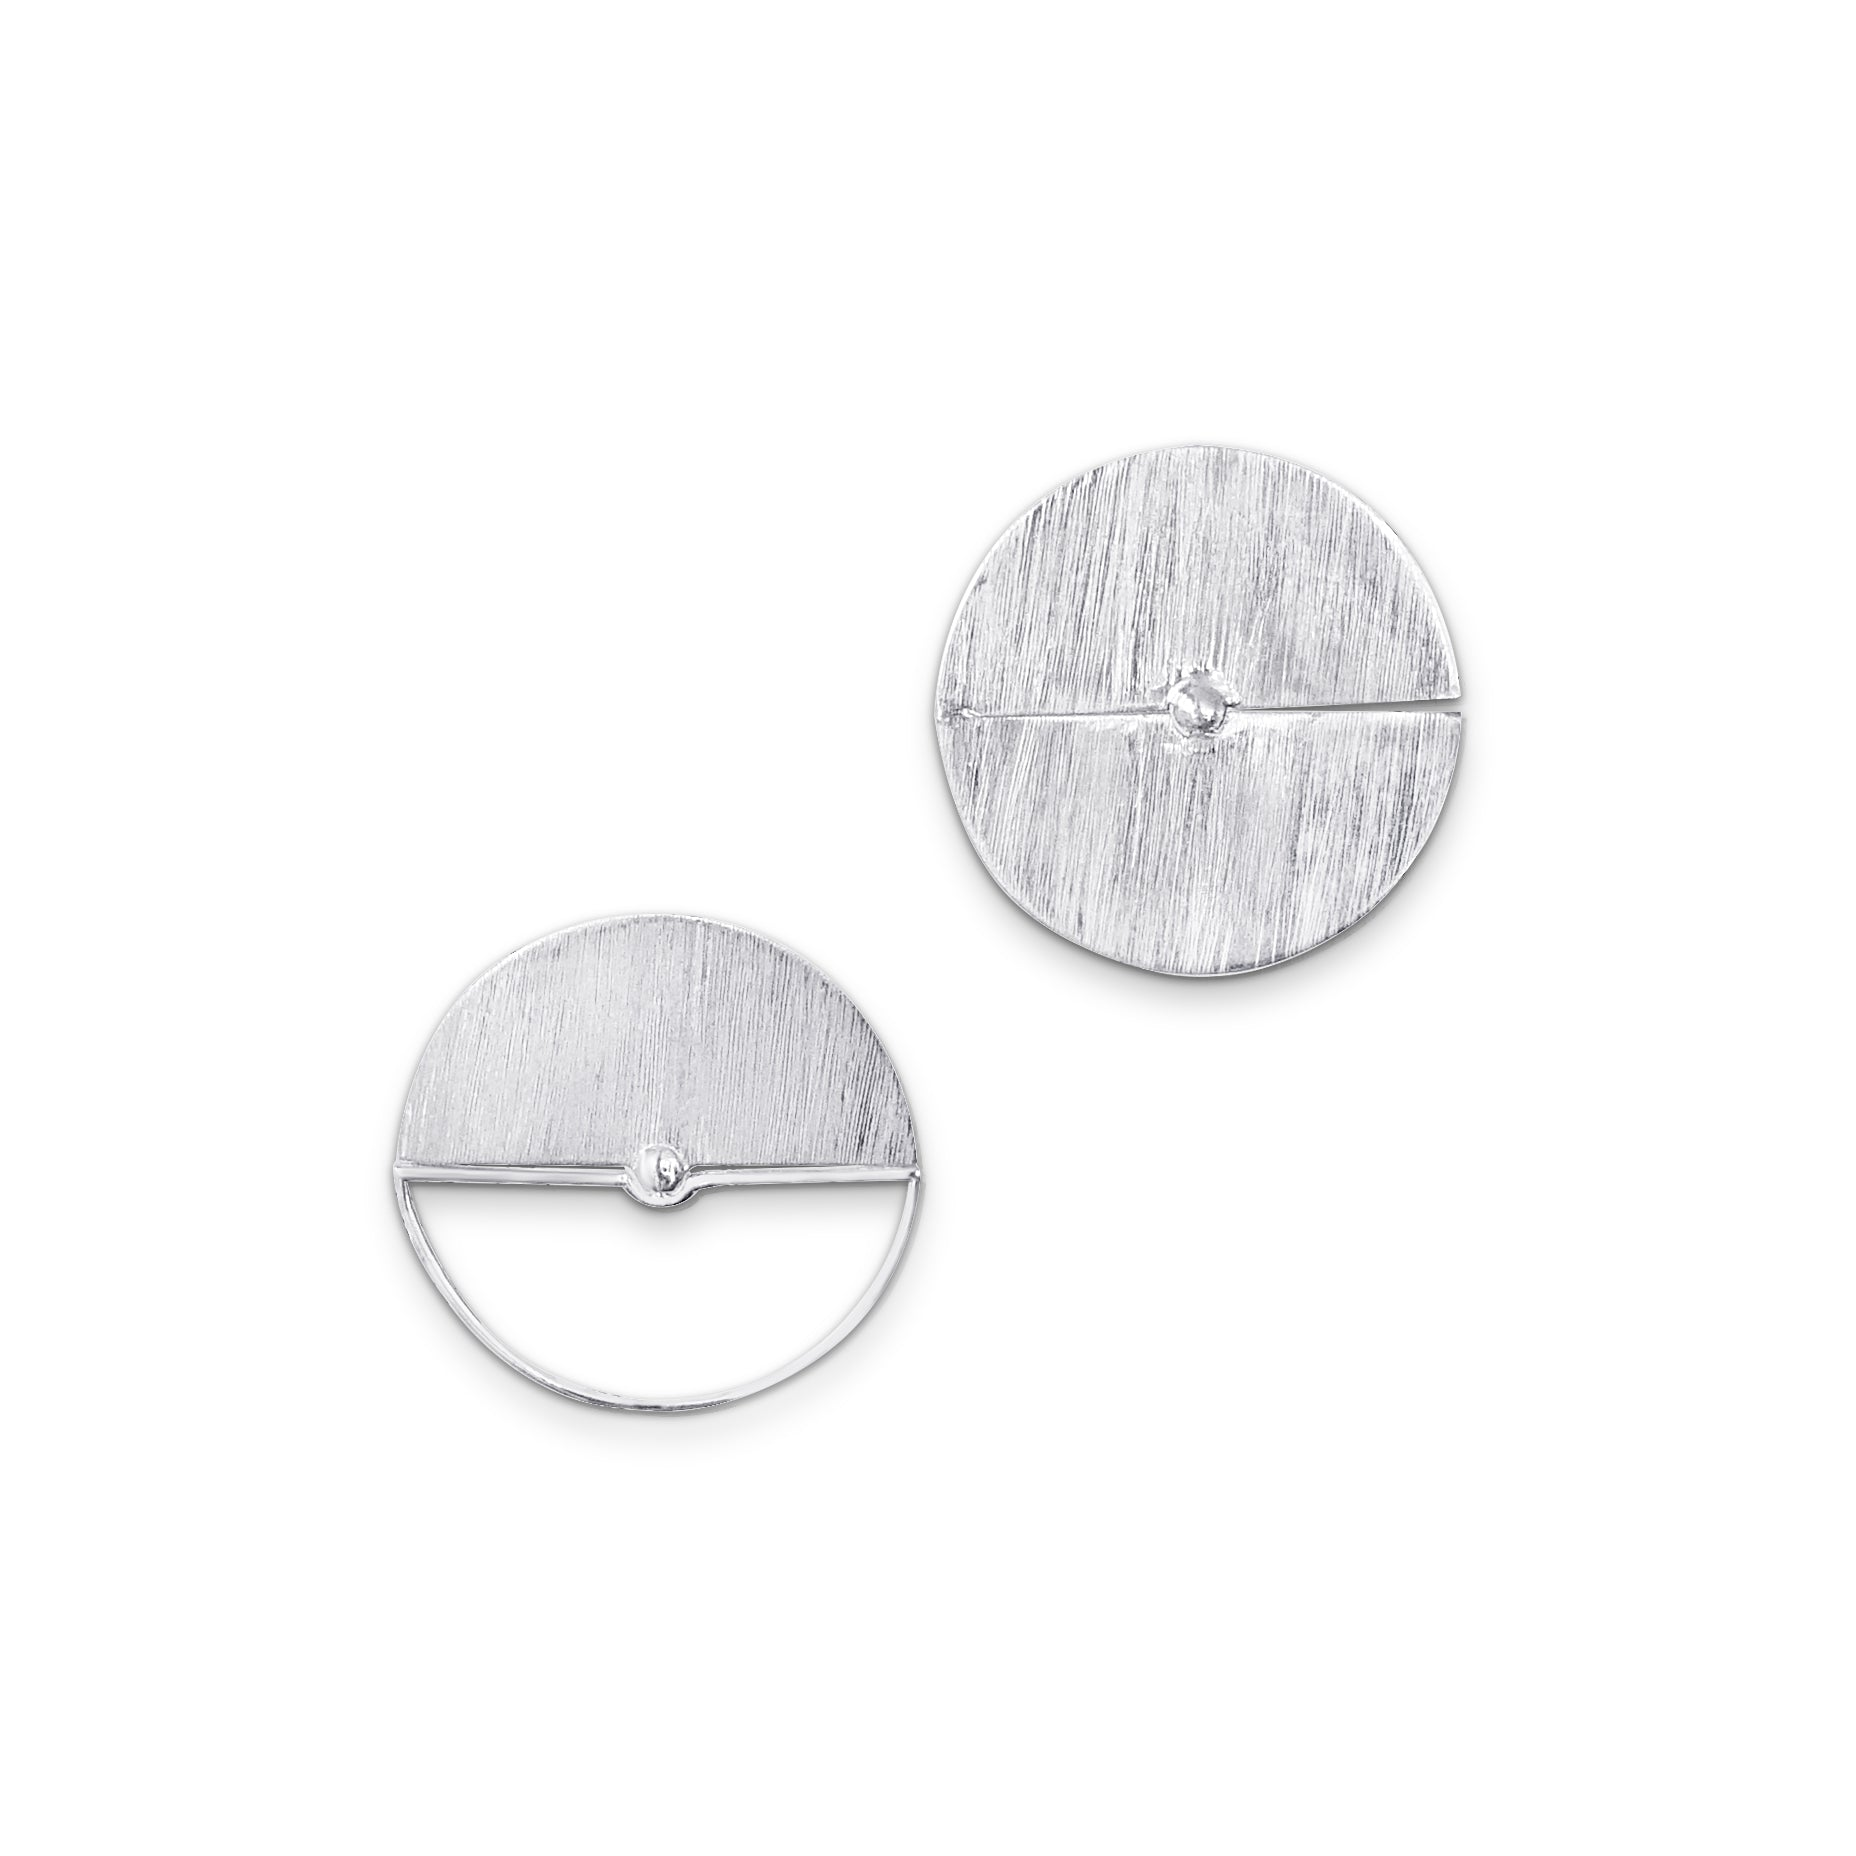 Full Moon and Half Moon Earrings-JY GAO